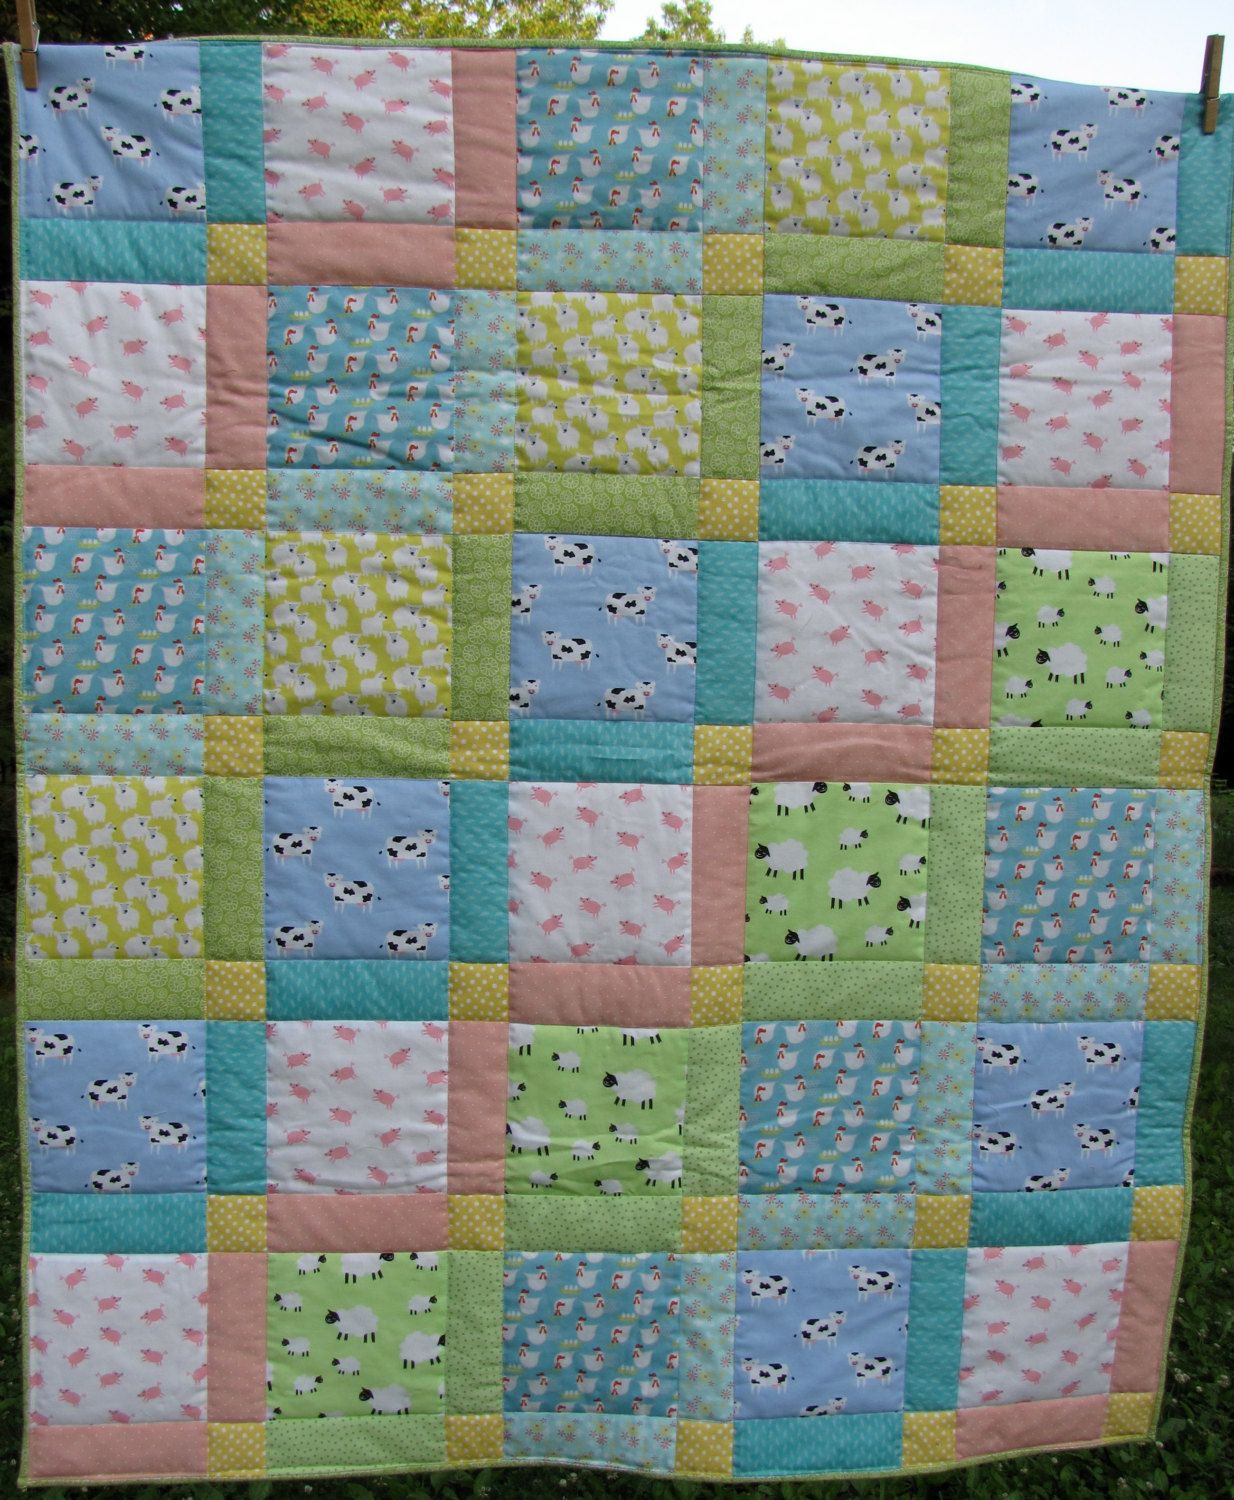 Pastel baby quilt with adorable farm animals, pigs, cows, sheep and chickens. how sweet this would be for a new baby's crib by BlueBeeQuiltsofMaine on Etsy